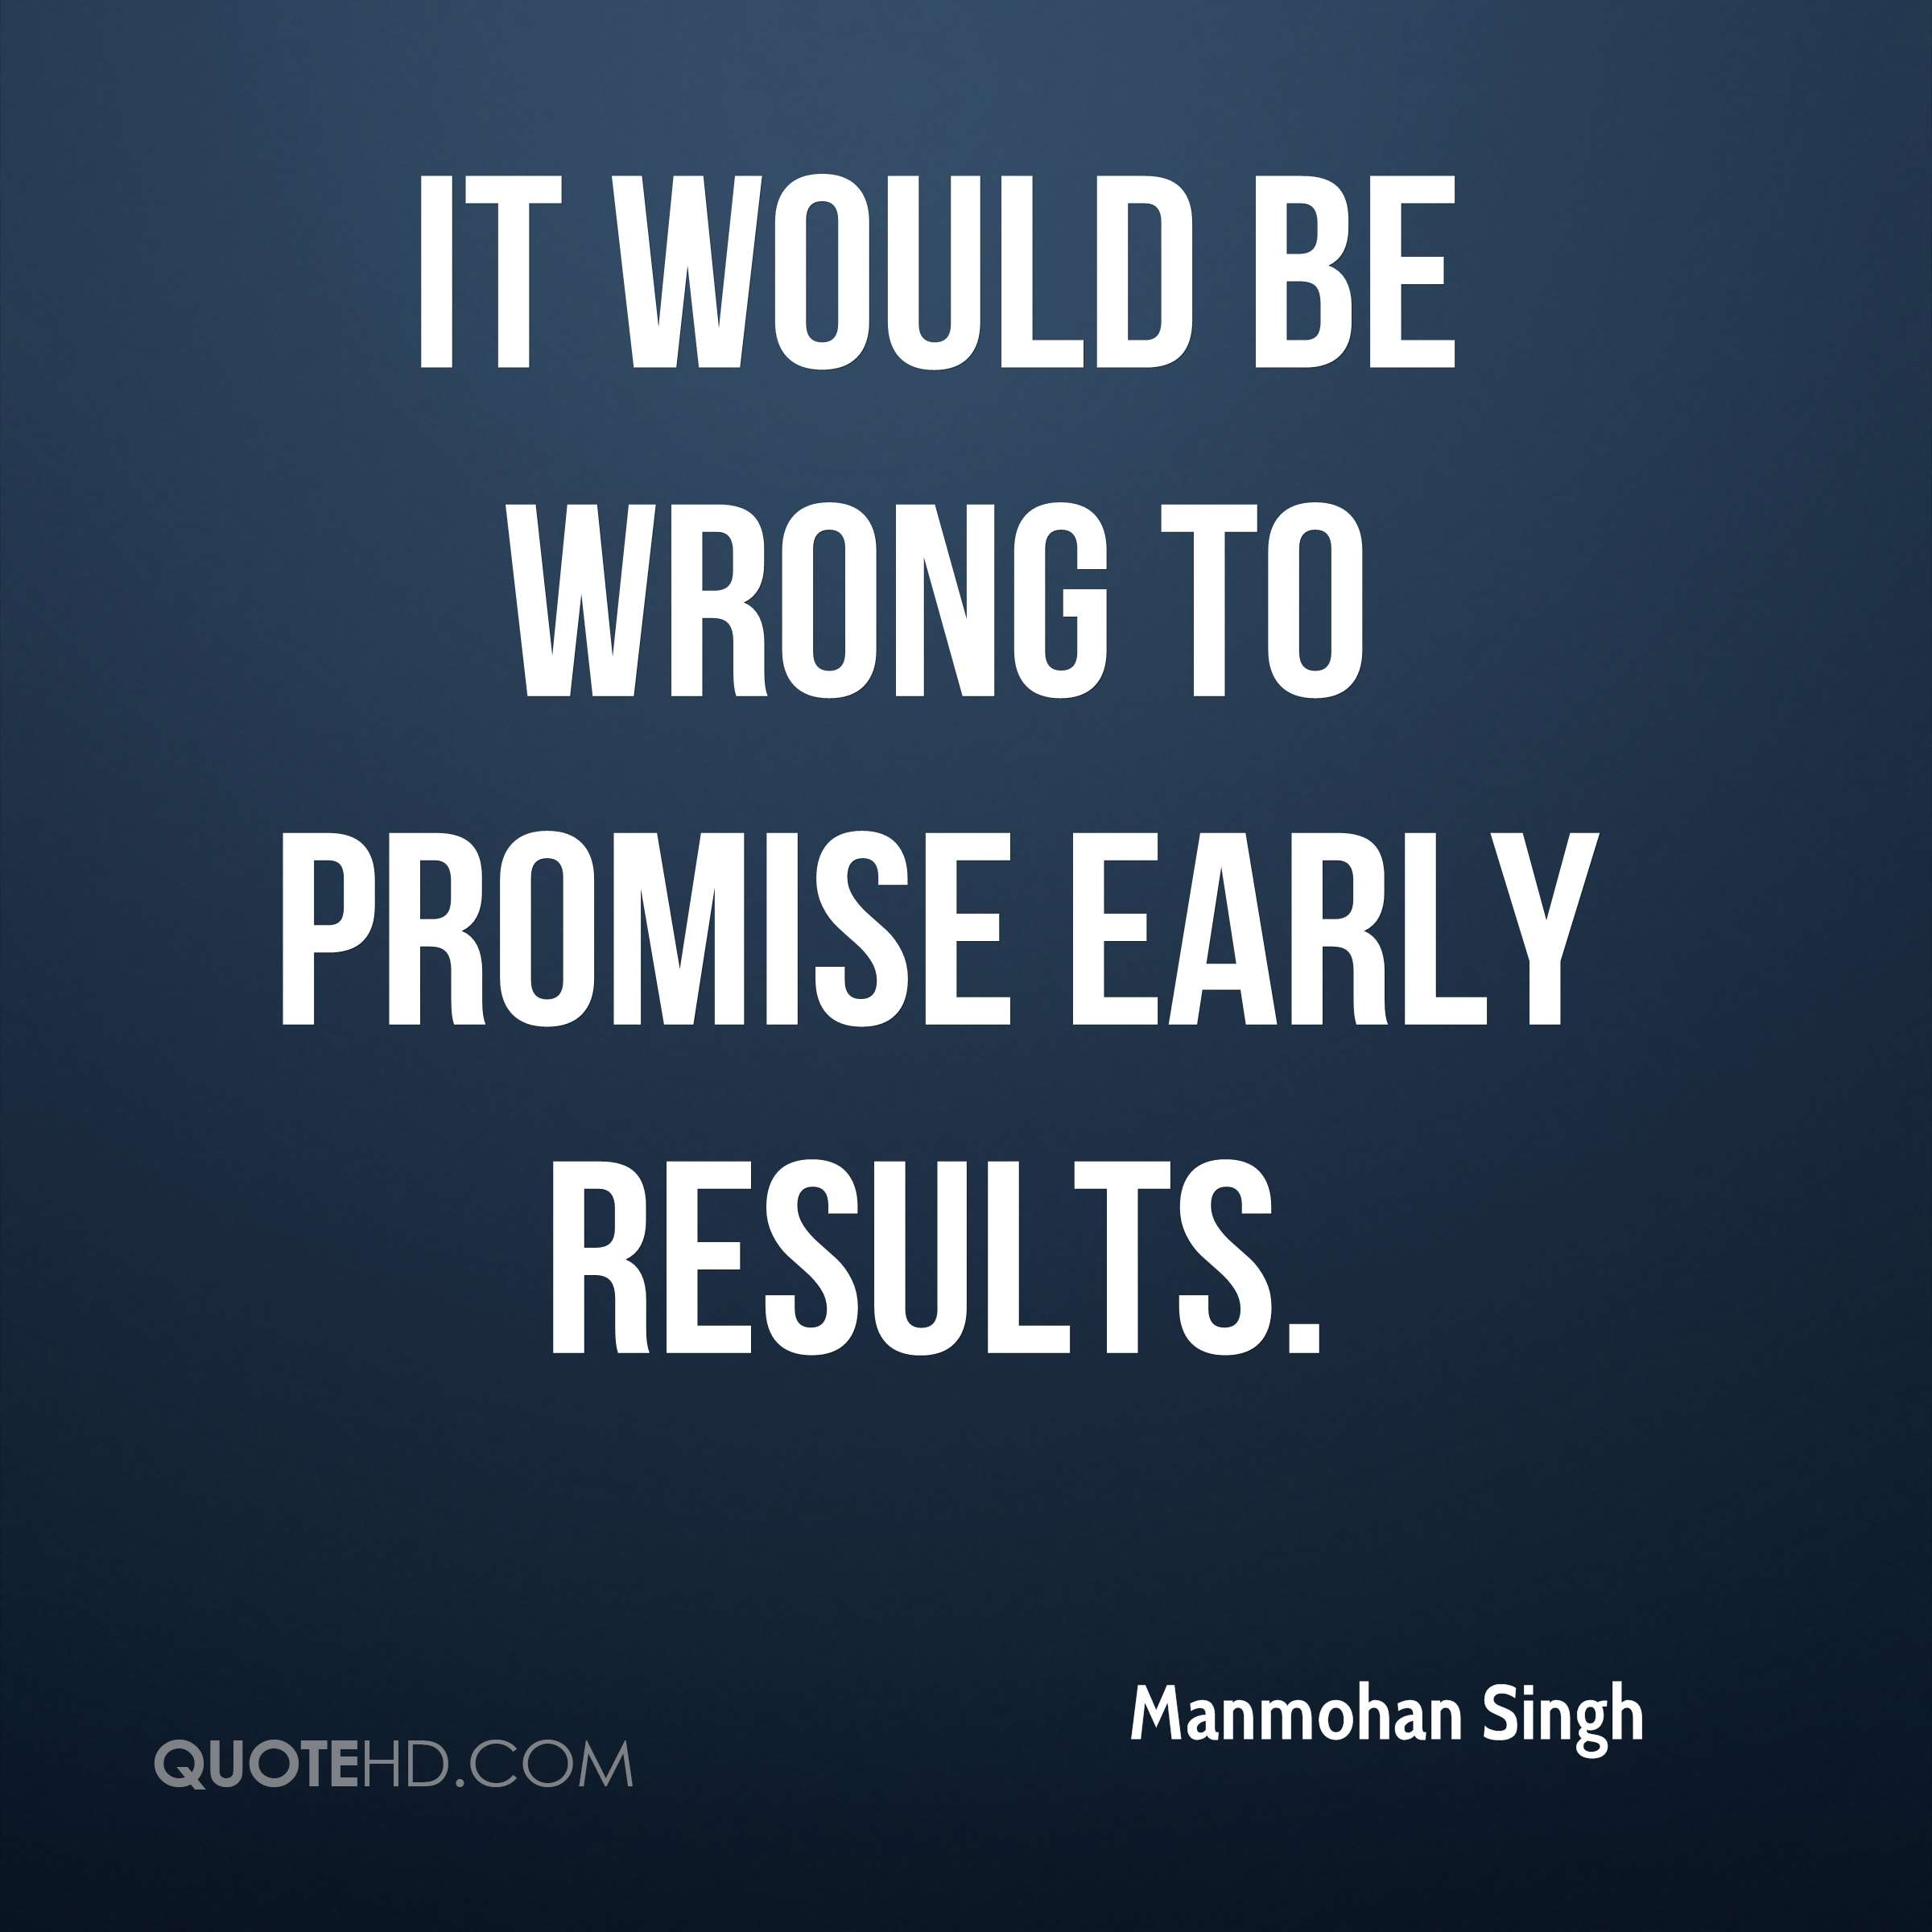 It would be wrong to promise early results.